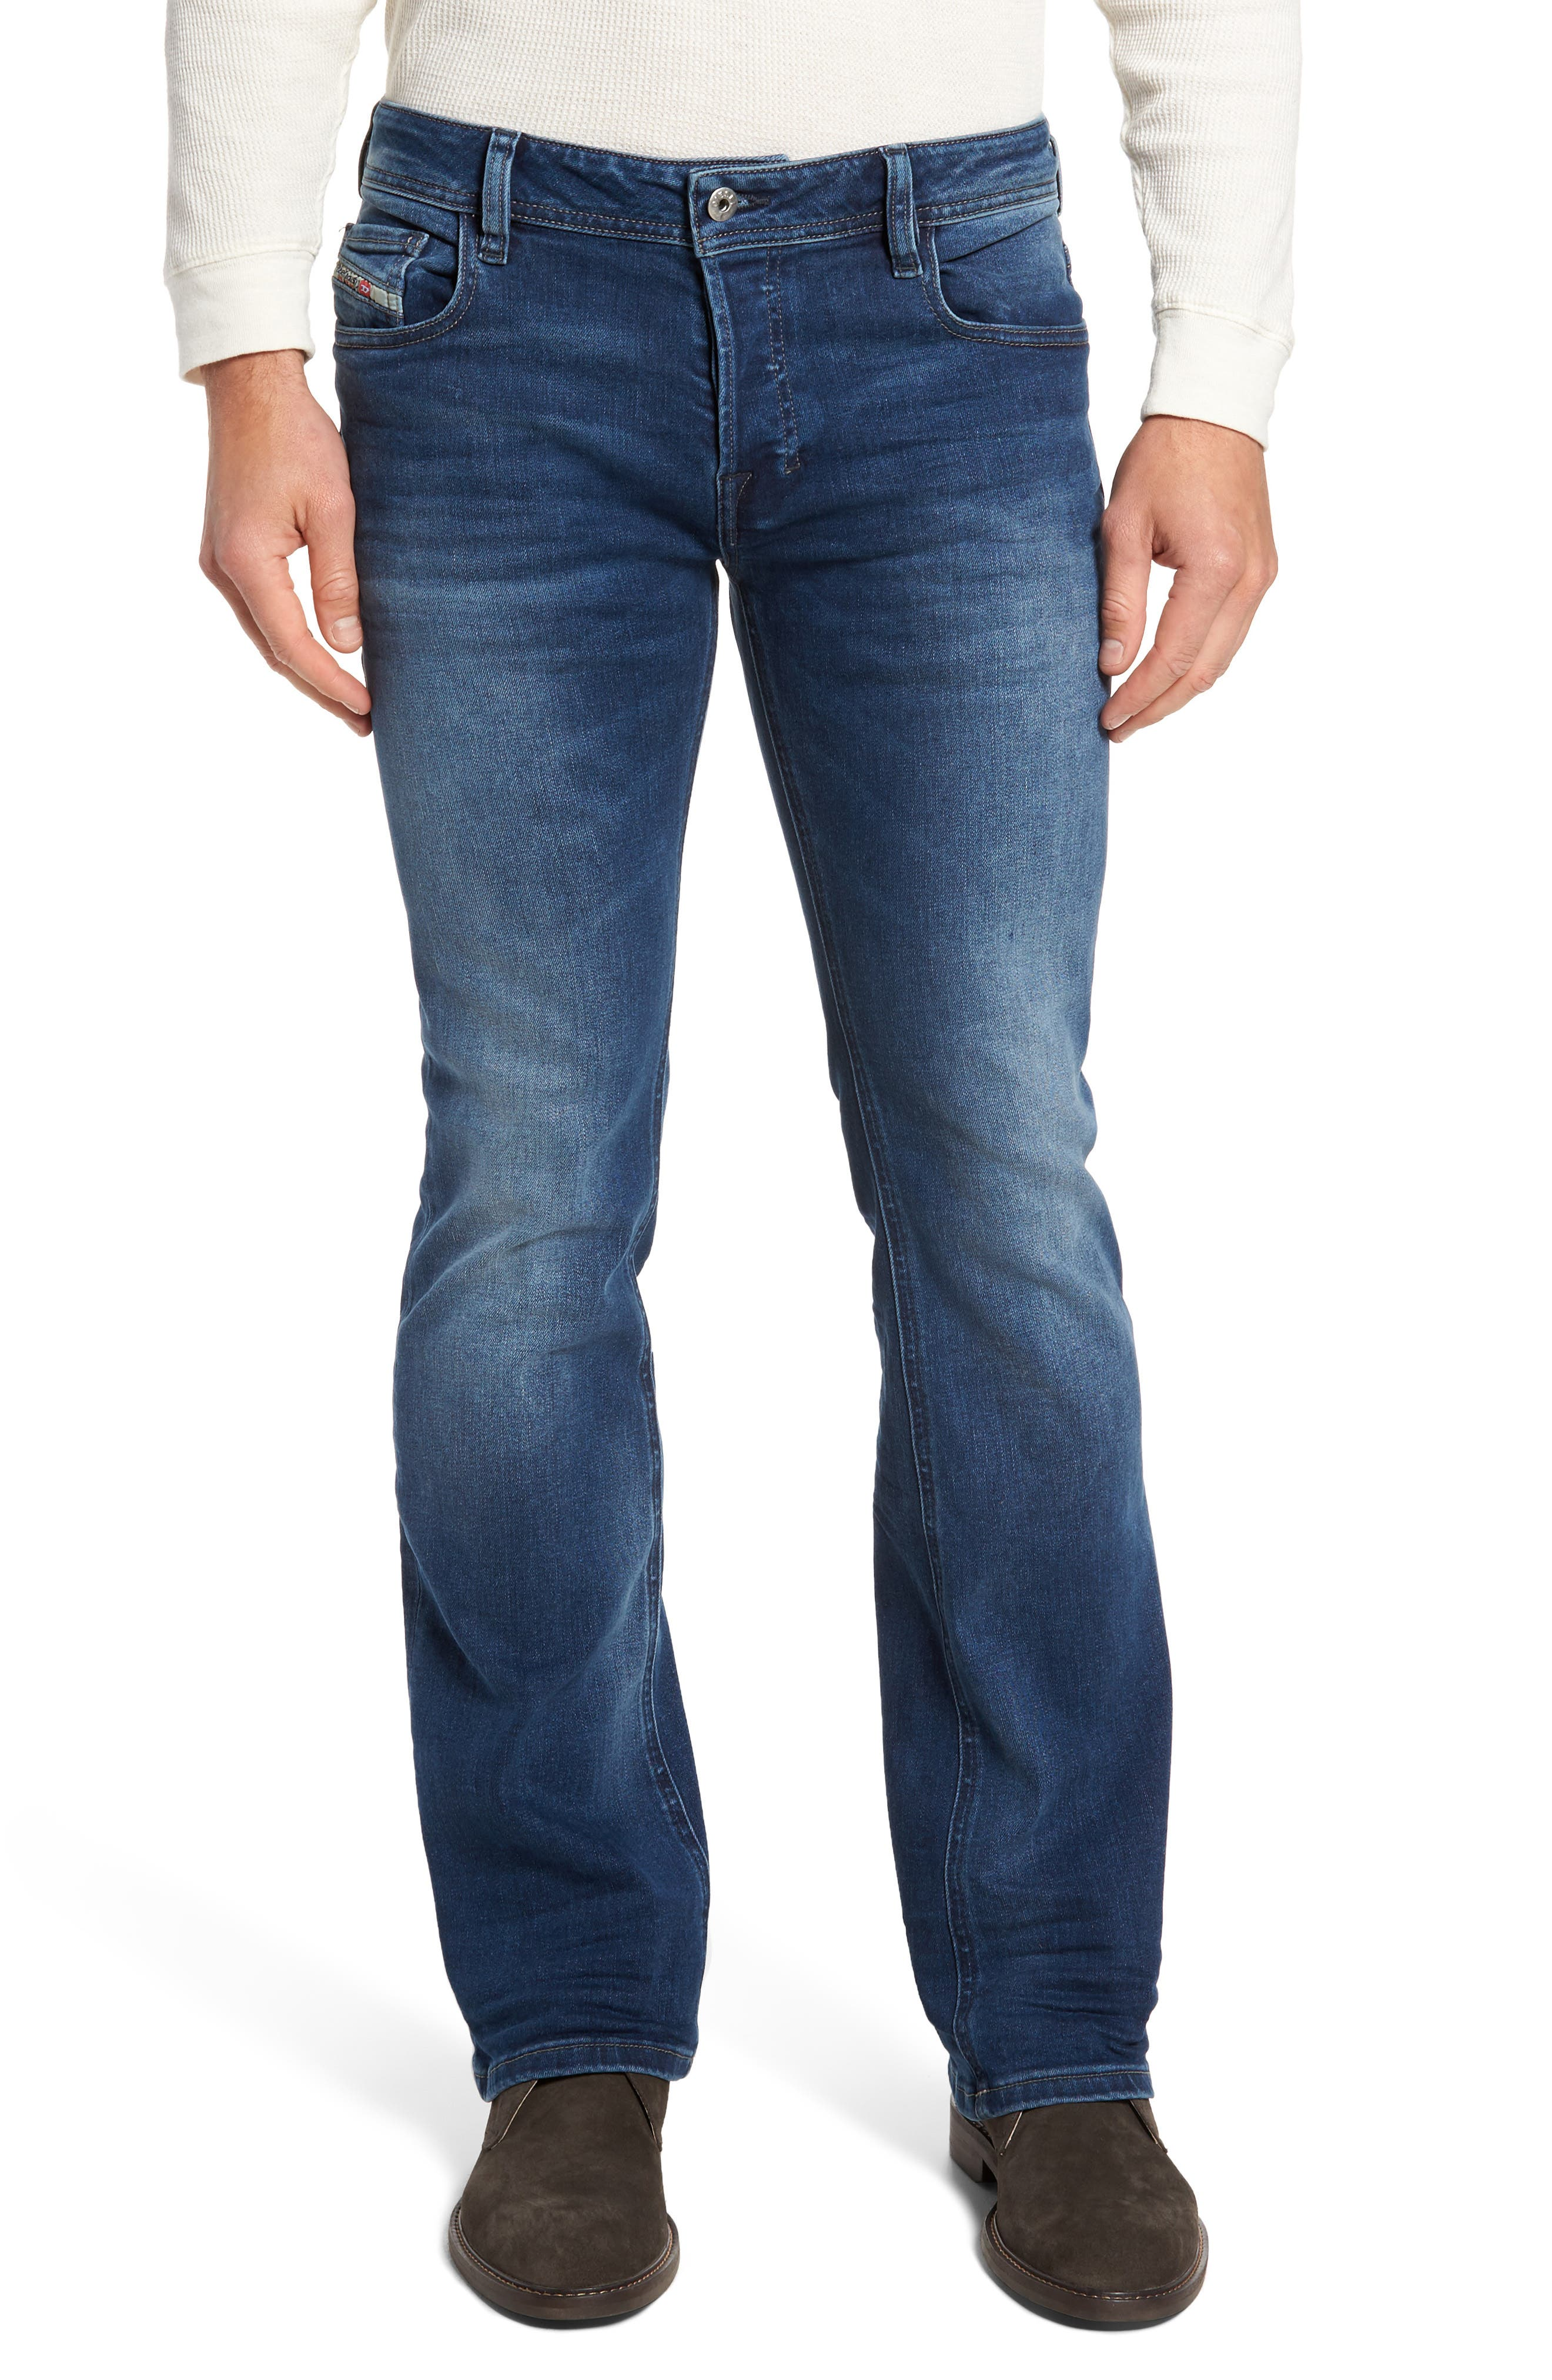 Alternate Image 1 Selected - DIESEL® Zatiny Bootcut Jeans (84HV)